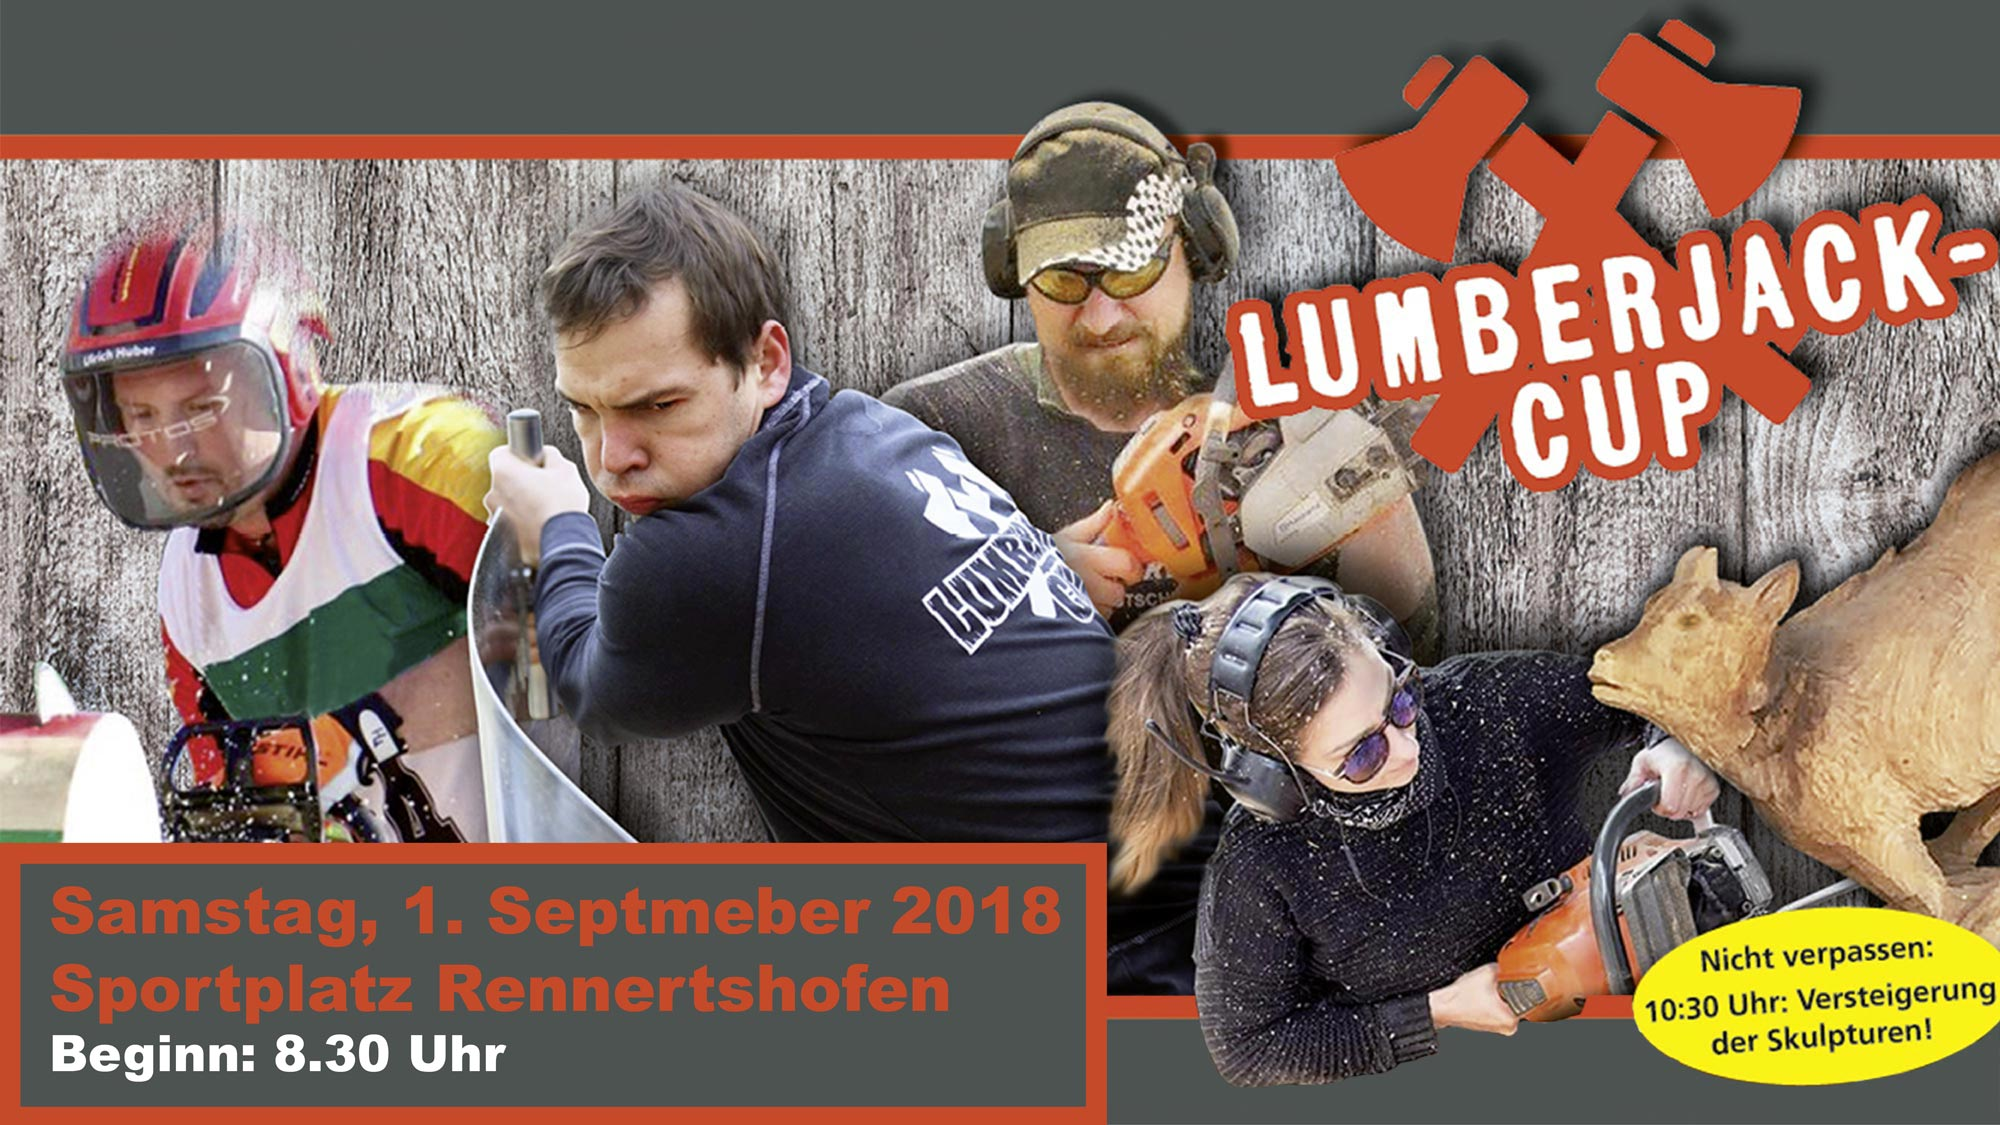 Kettlitz Lumberjack Cup am 1. September